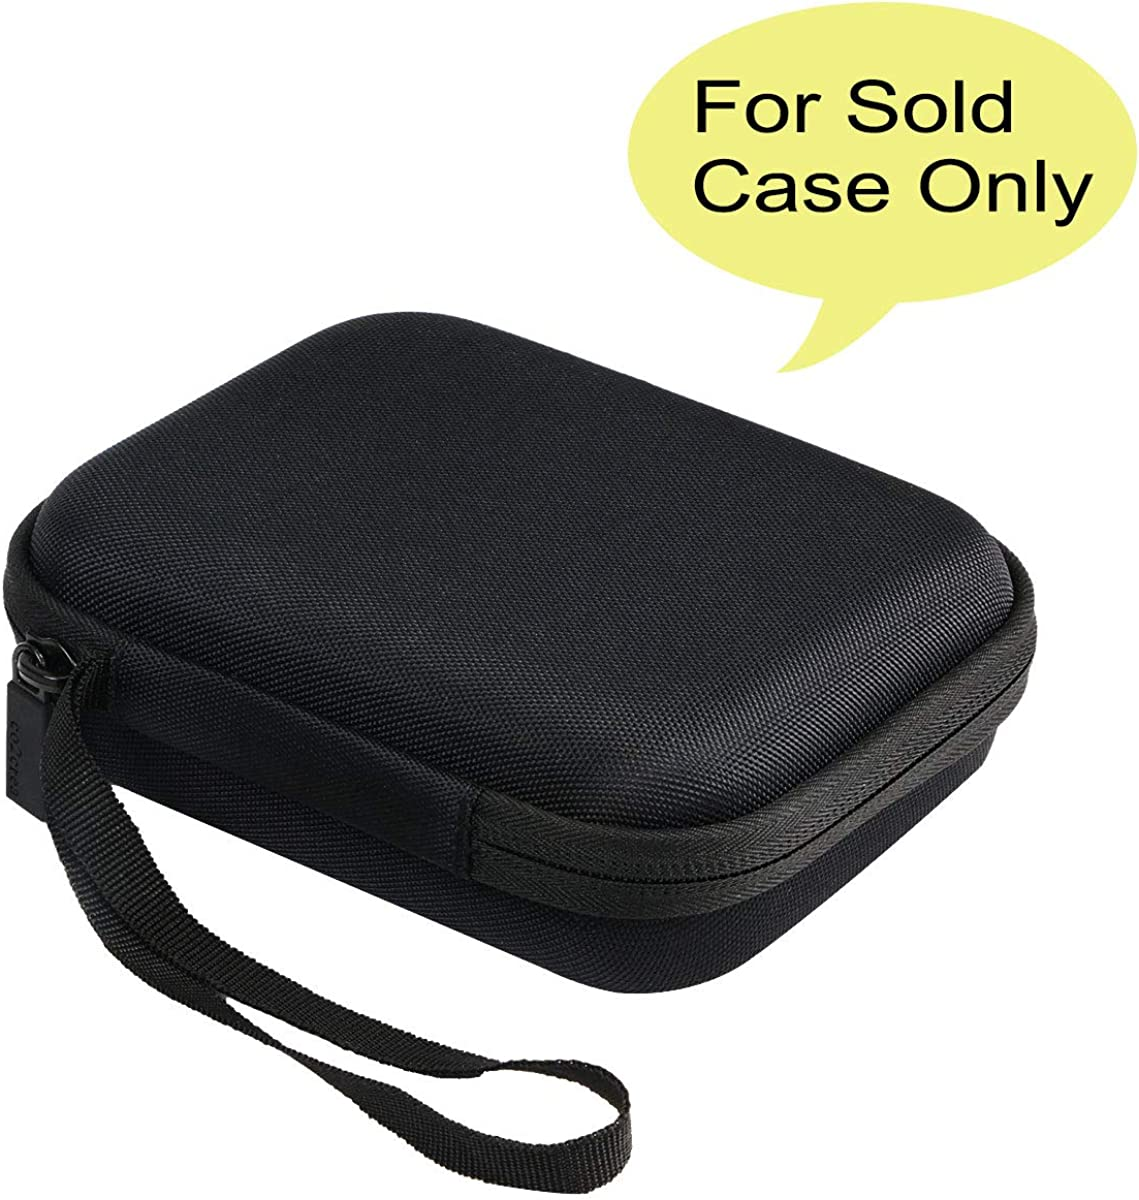 co2crea Hard Travel Case for Sphero Specdrums 2 Rings Musical Rings Play Pad,Bigger